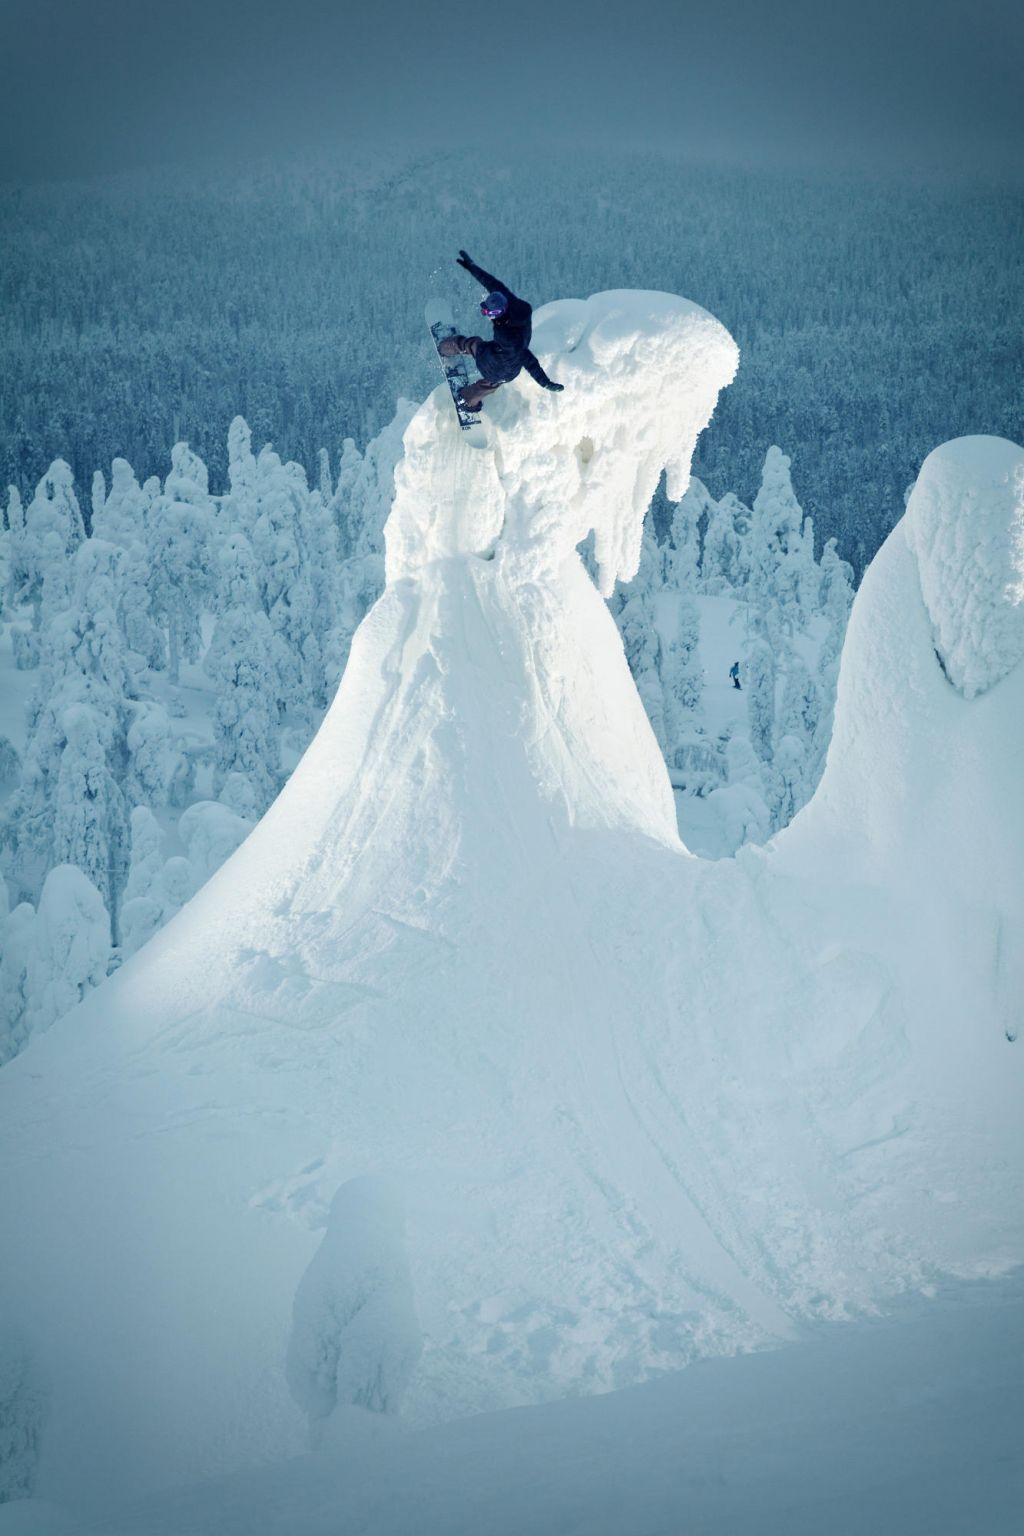 Snowboarding on the treetops | finland photographer dog